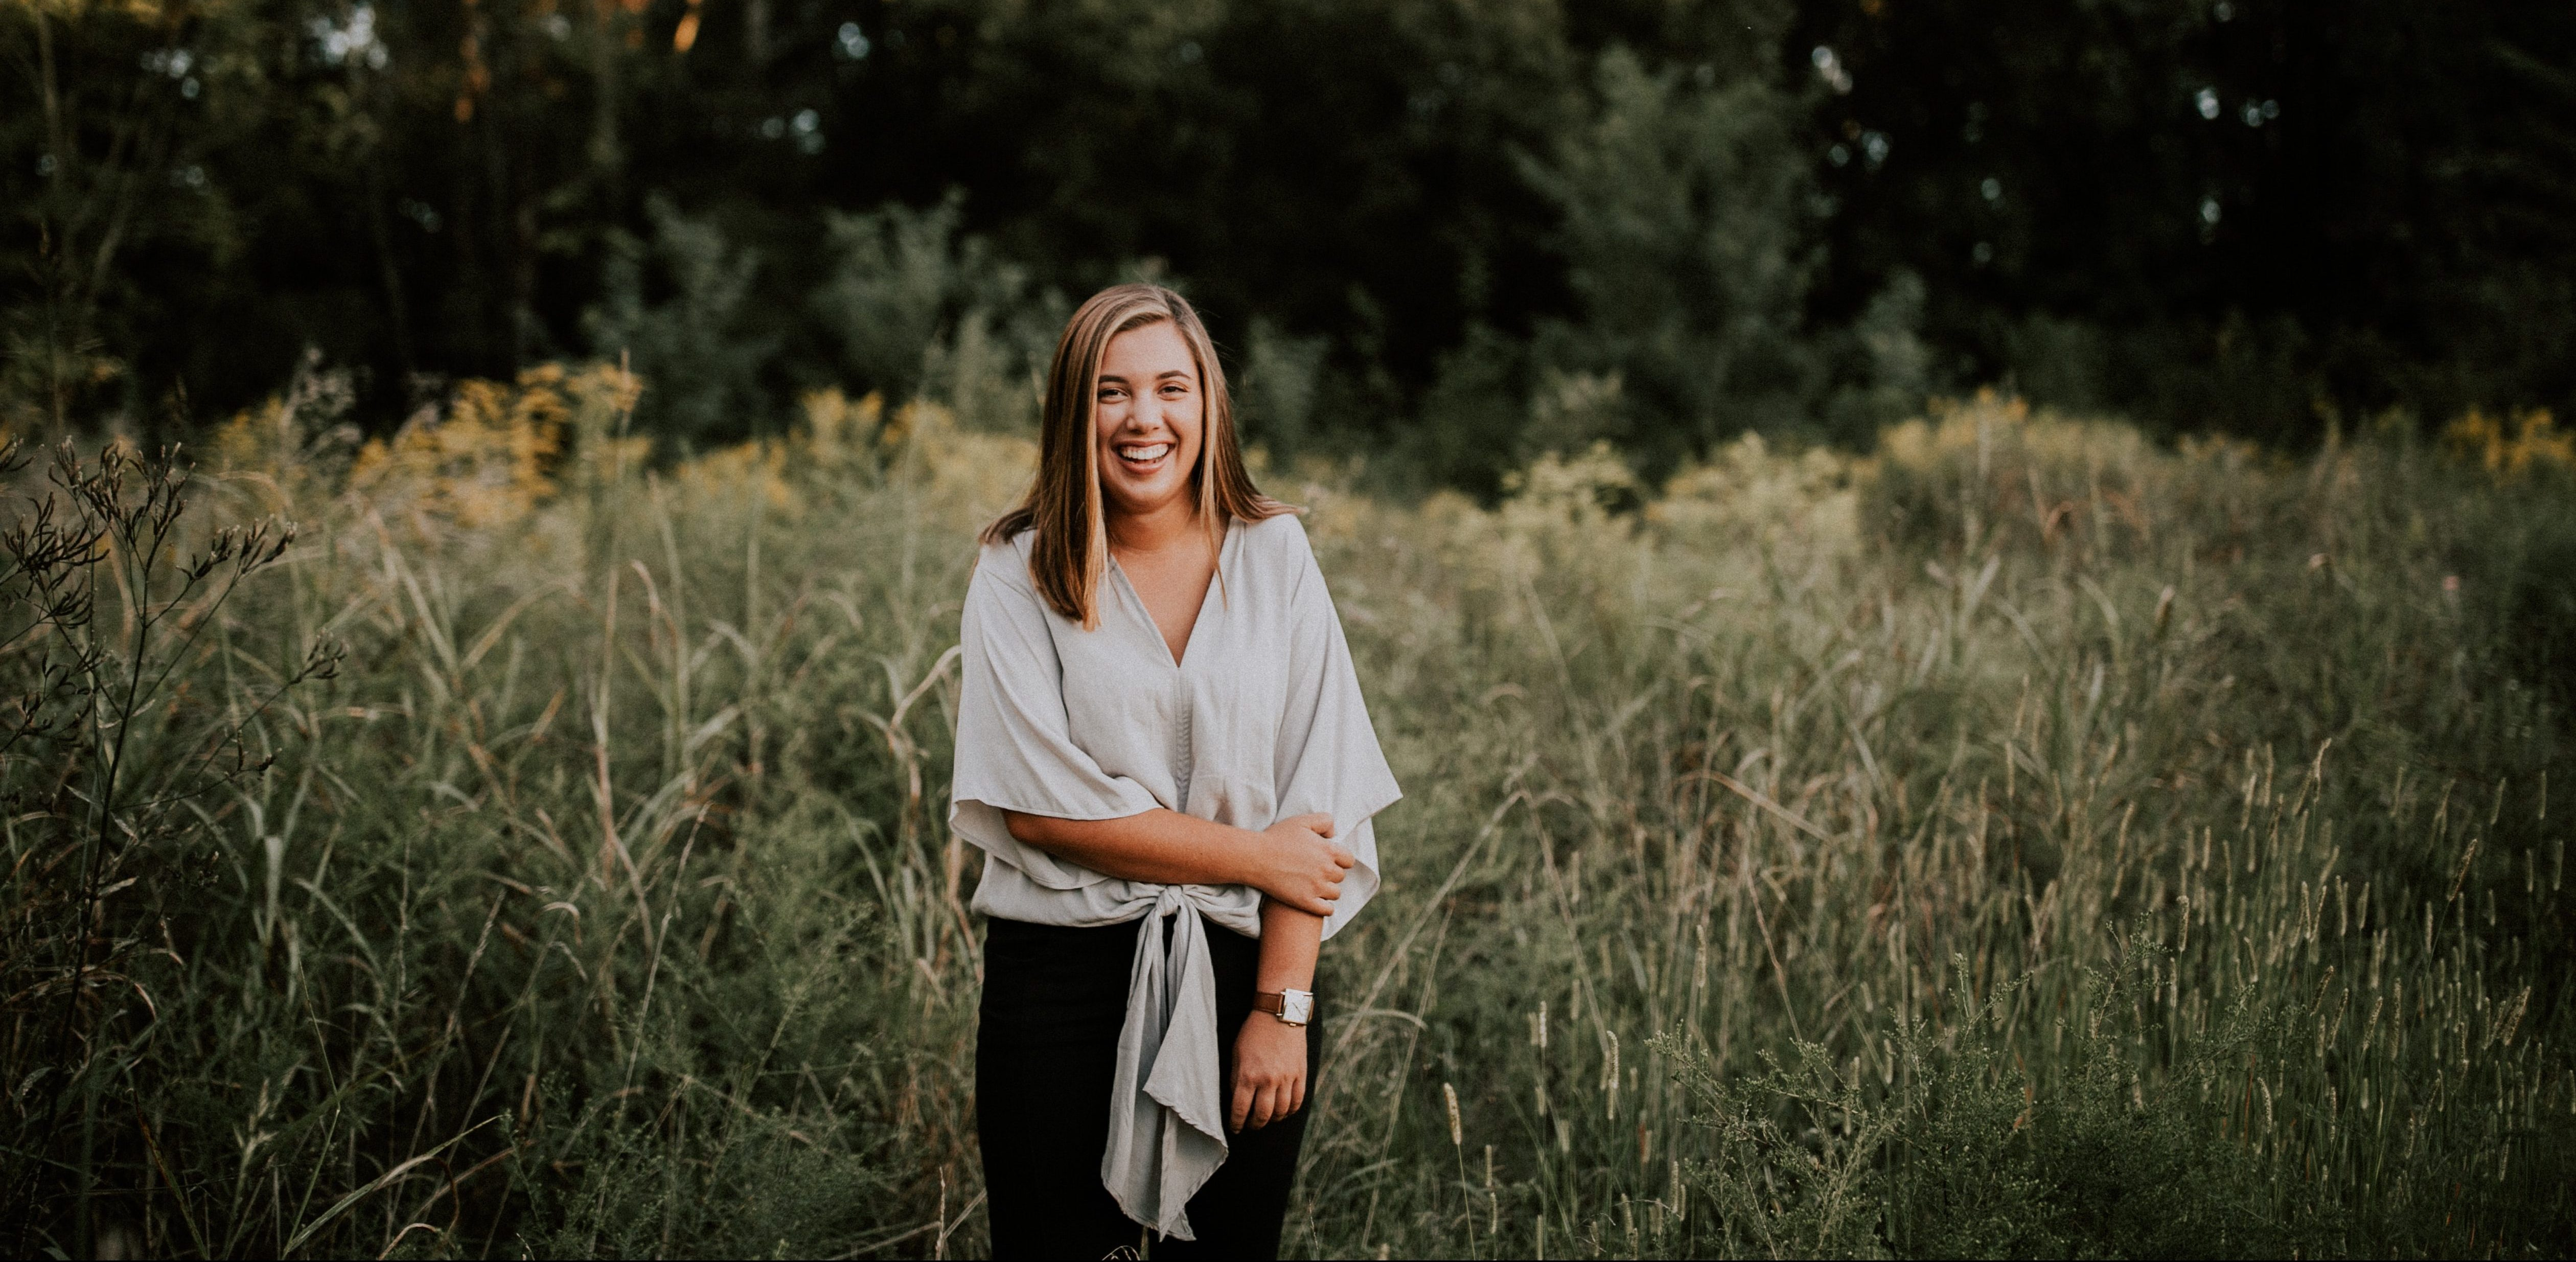 How Consent Can Help You Become More YOU: An Essay by YA Author Rayne Lacko